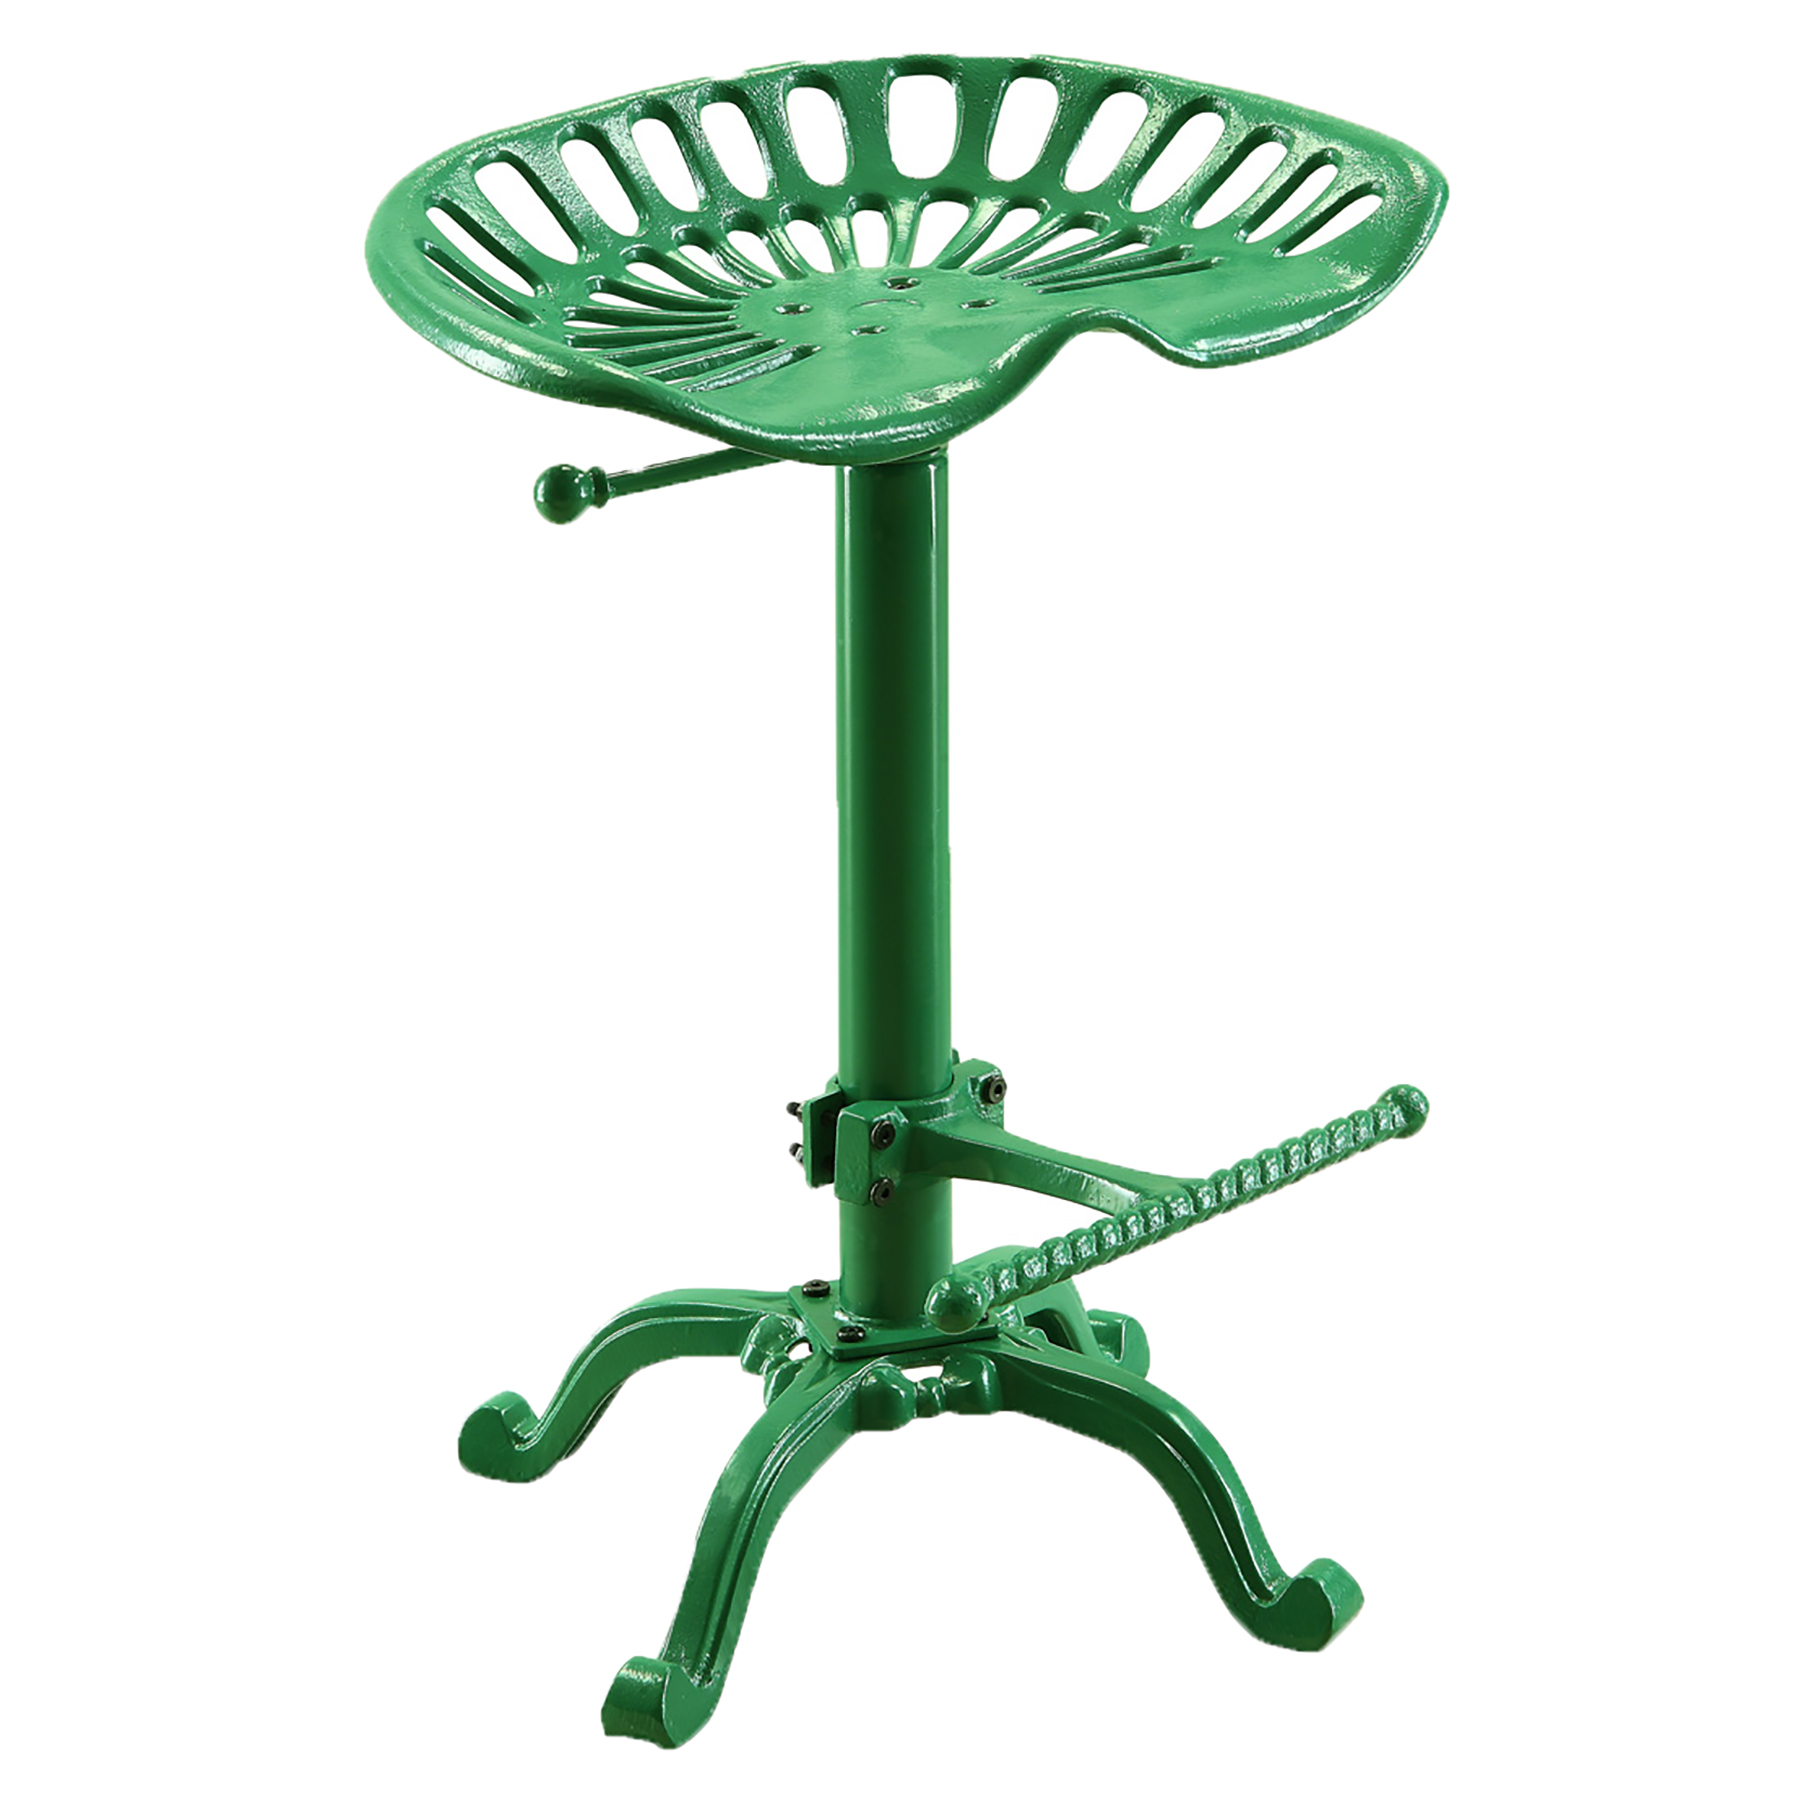 Hunter Adjustable Tractor Seat Stool, Tractor Green